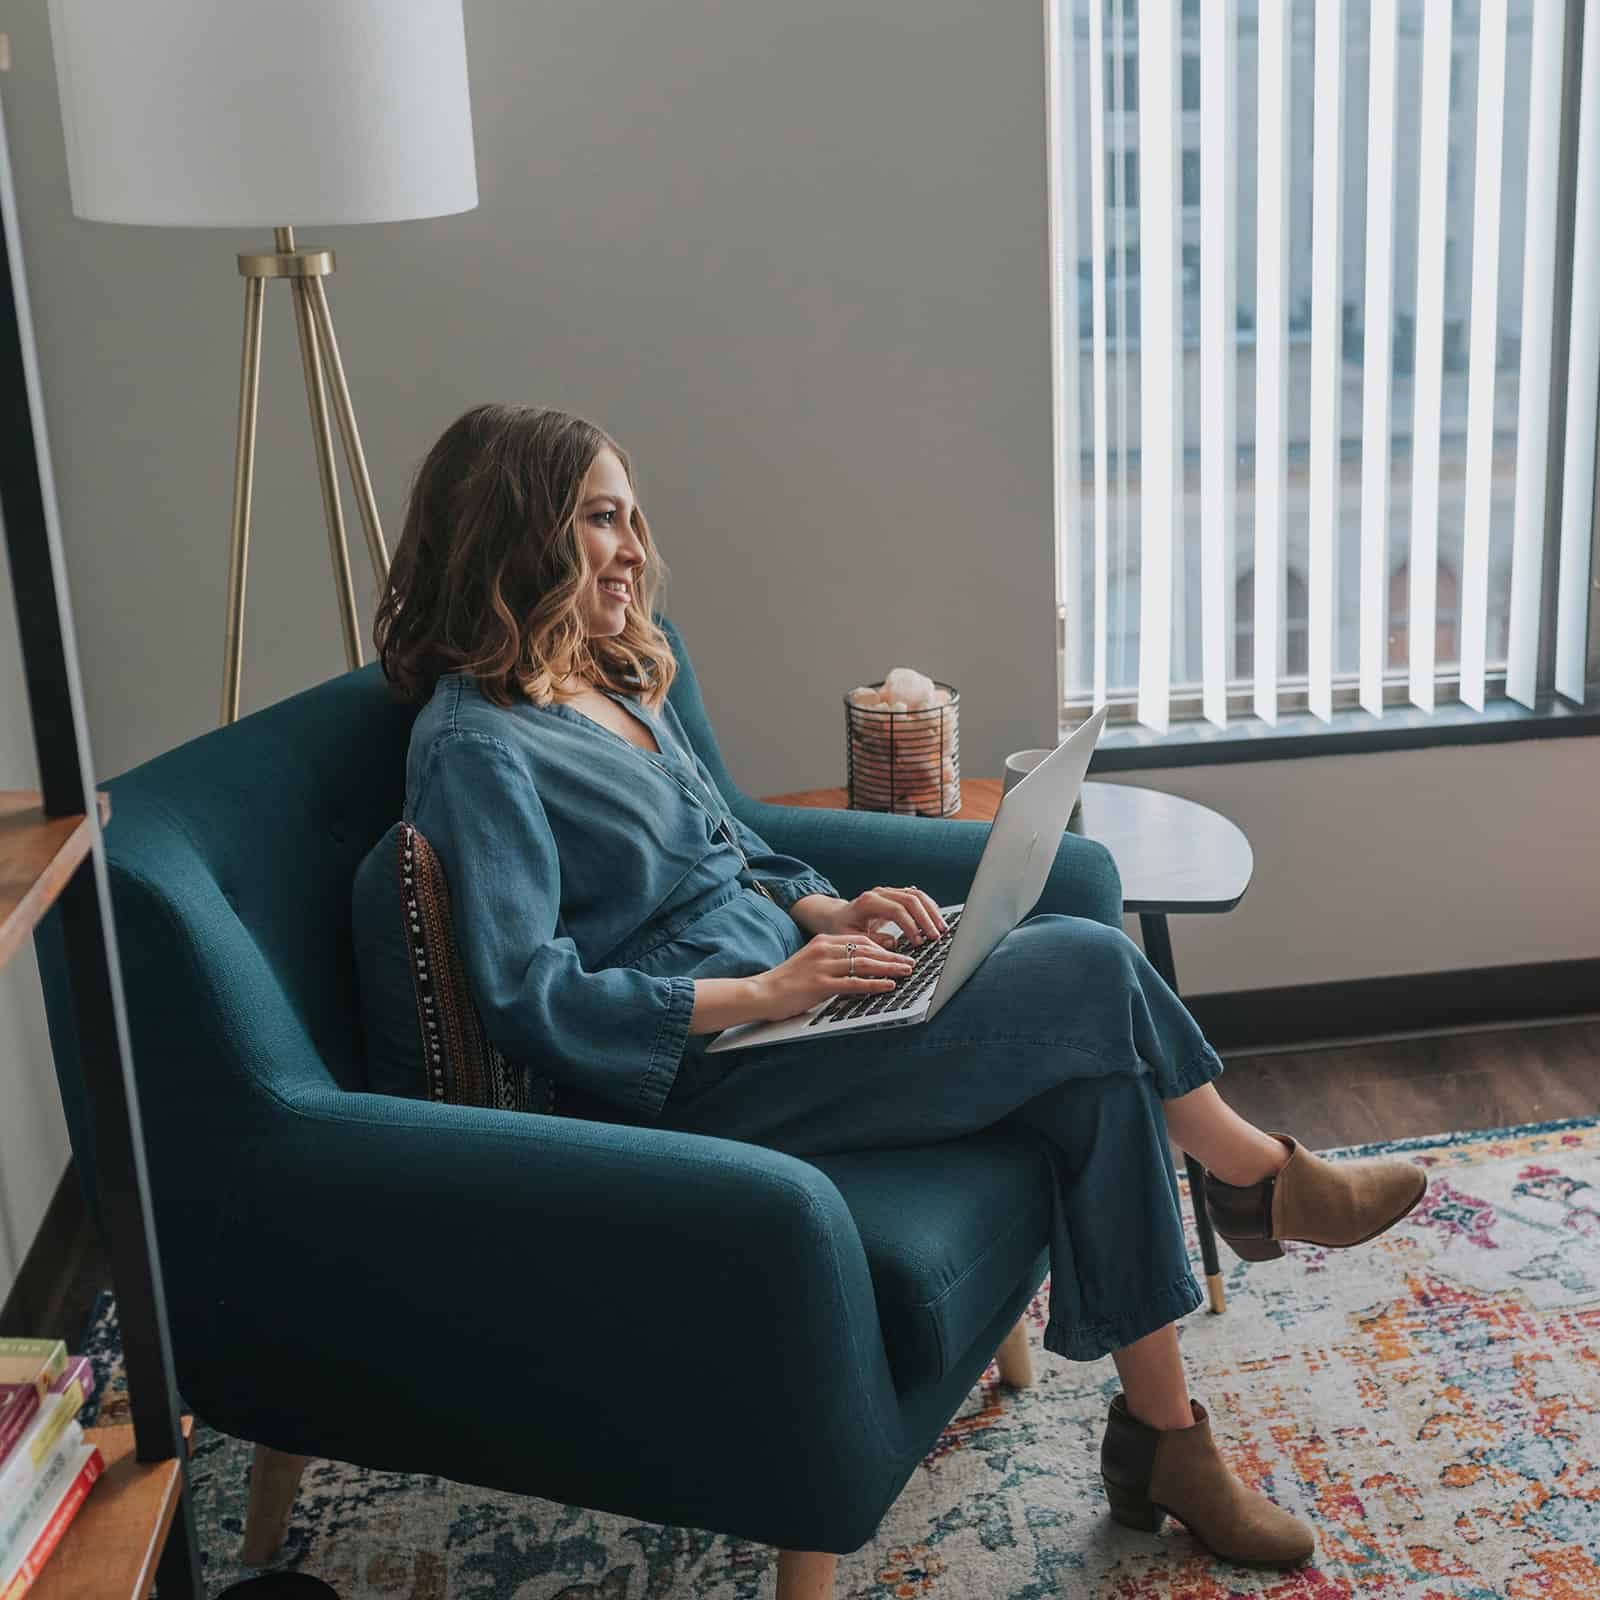 Kara hanging out in the office of her private practice